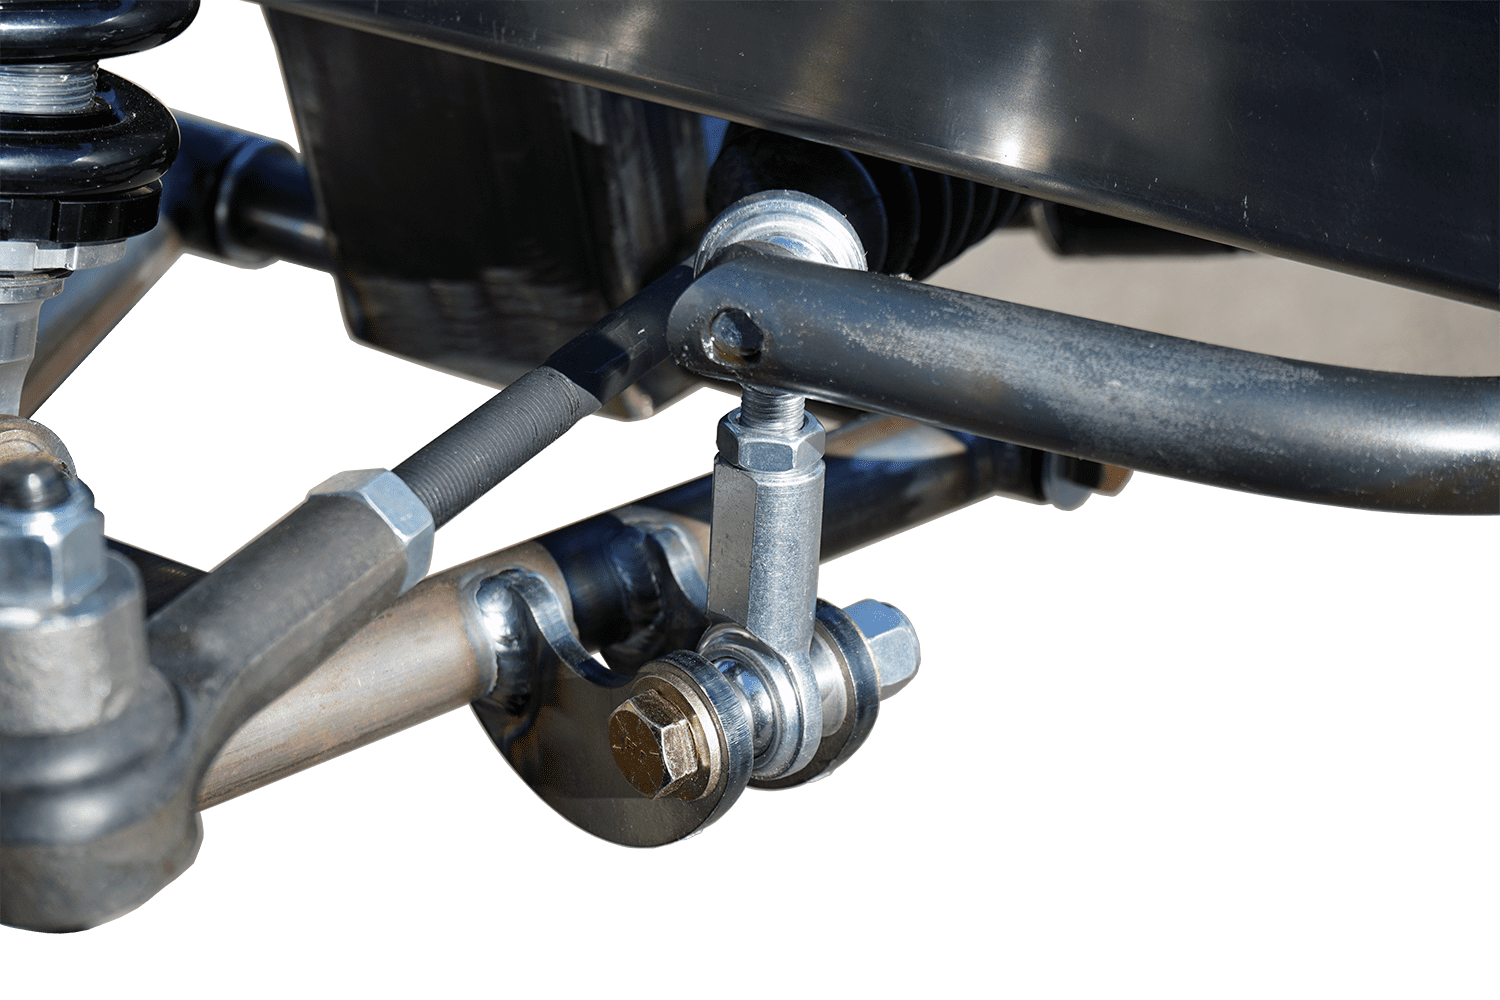 SWAY BAR LINK CUT OUT